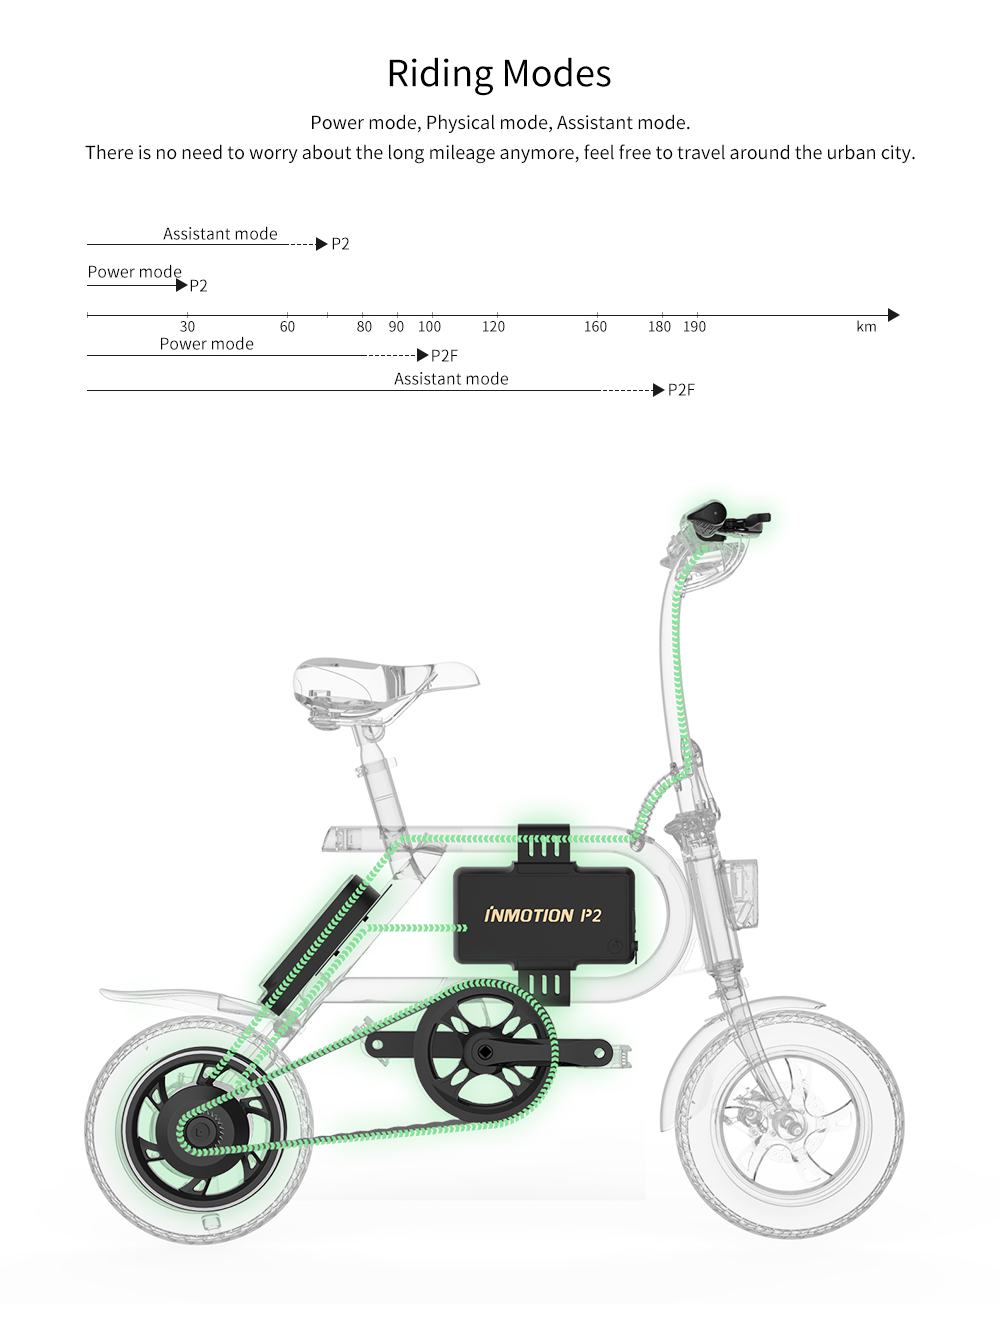 HTB1Etj3uHsrBKNjSZFpq6AXhFXau - INMOTION P2F EBIKE Folding Bike Mini Bicycle Electric Scooter Lithium-ion Battery 350W CE RoHS FCC